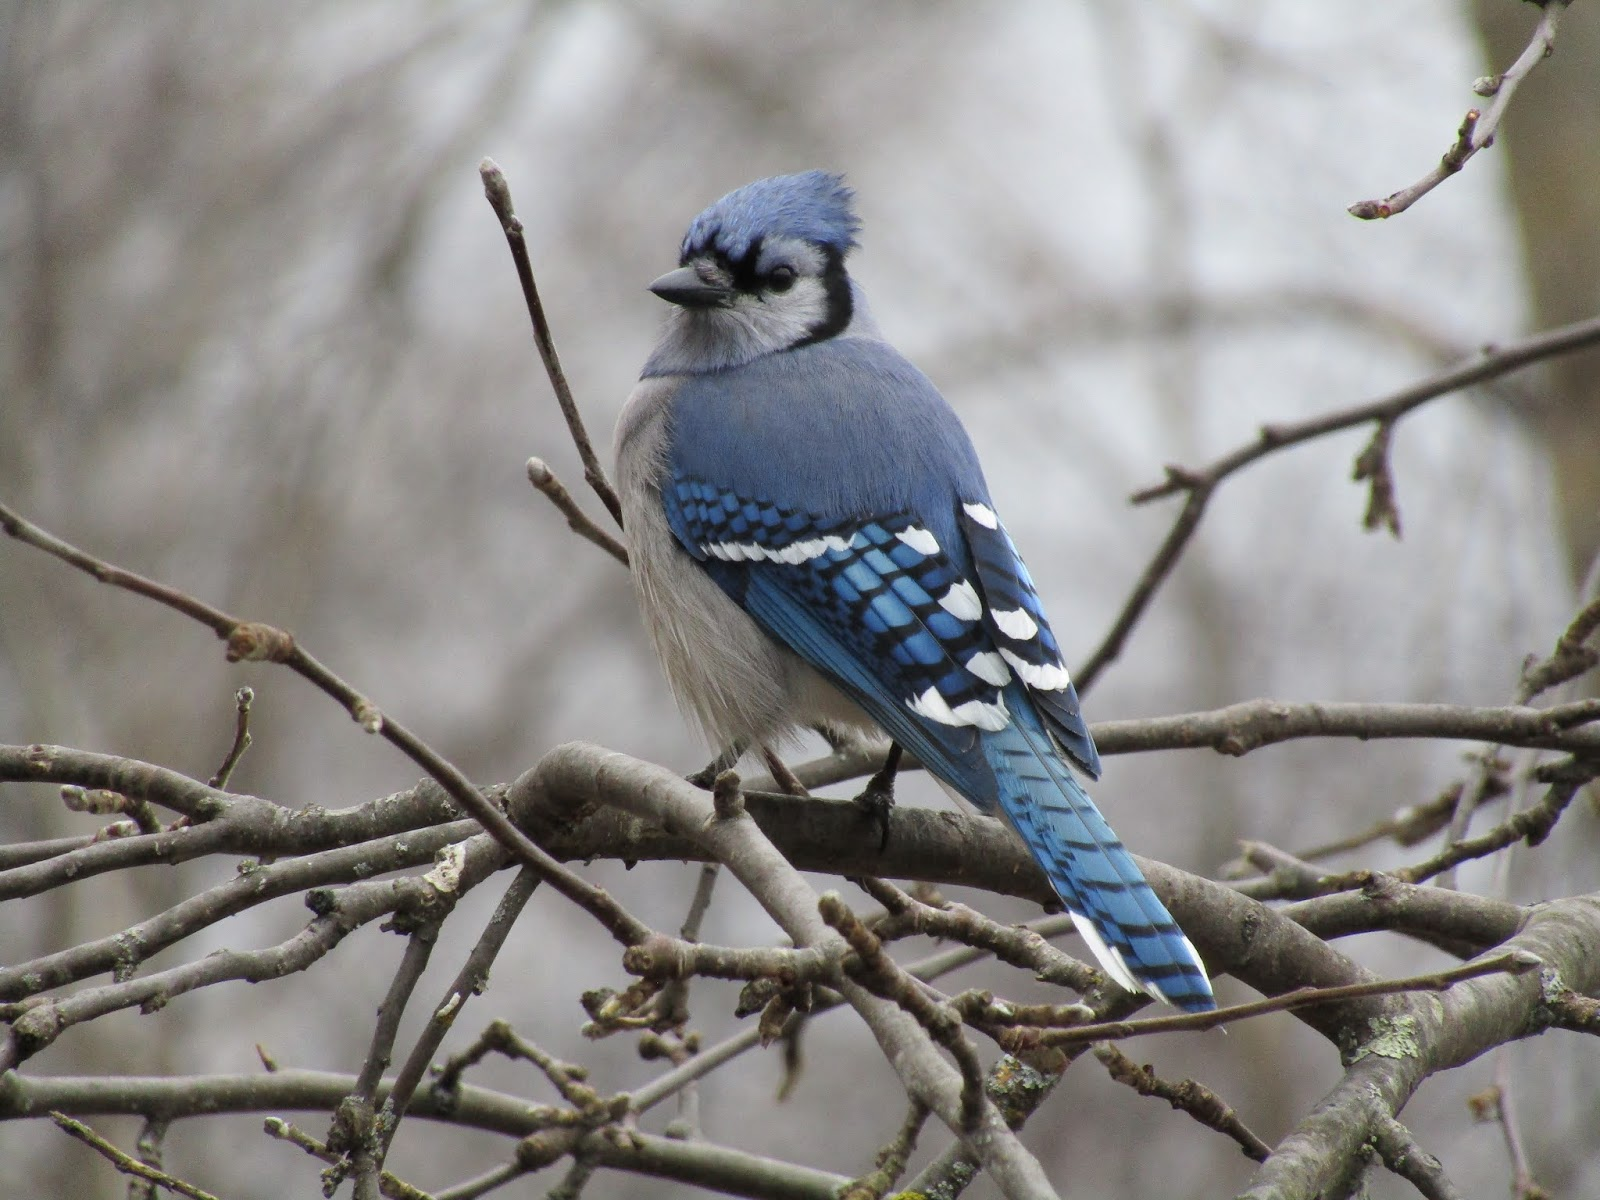 One such awesome character creation is The Blue Jay